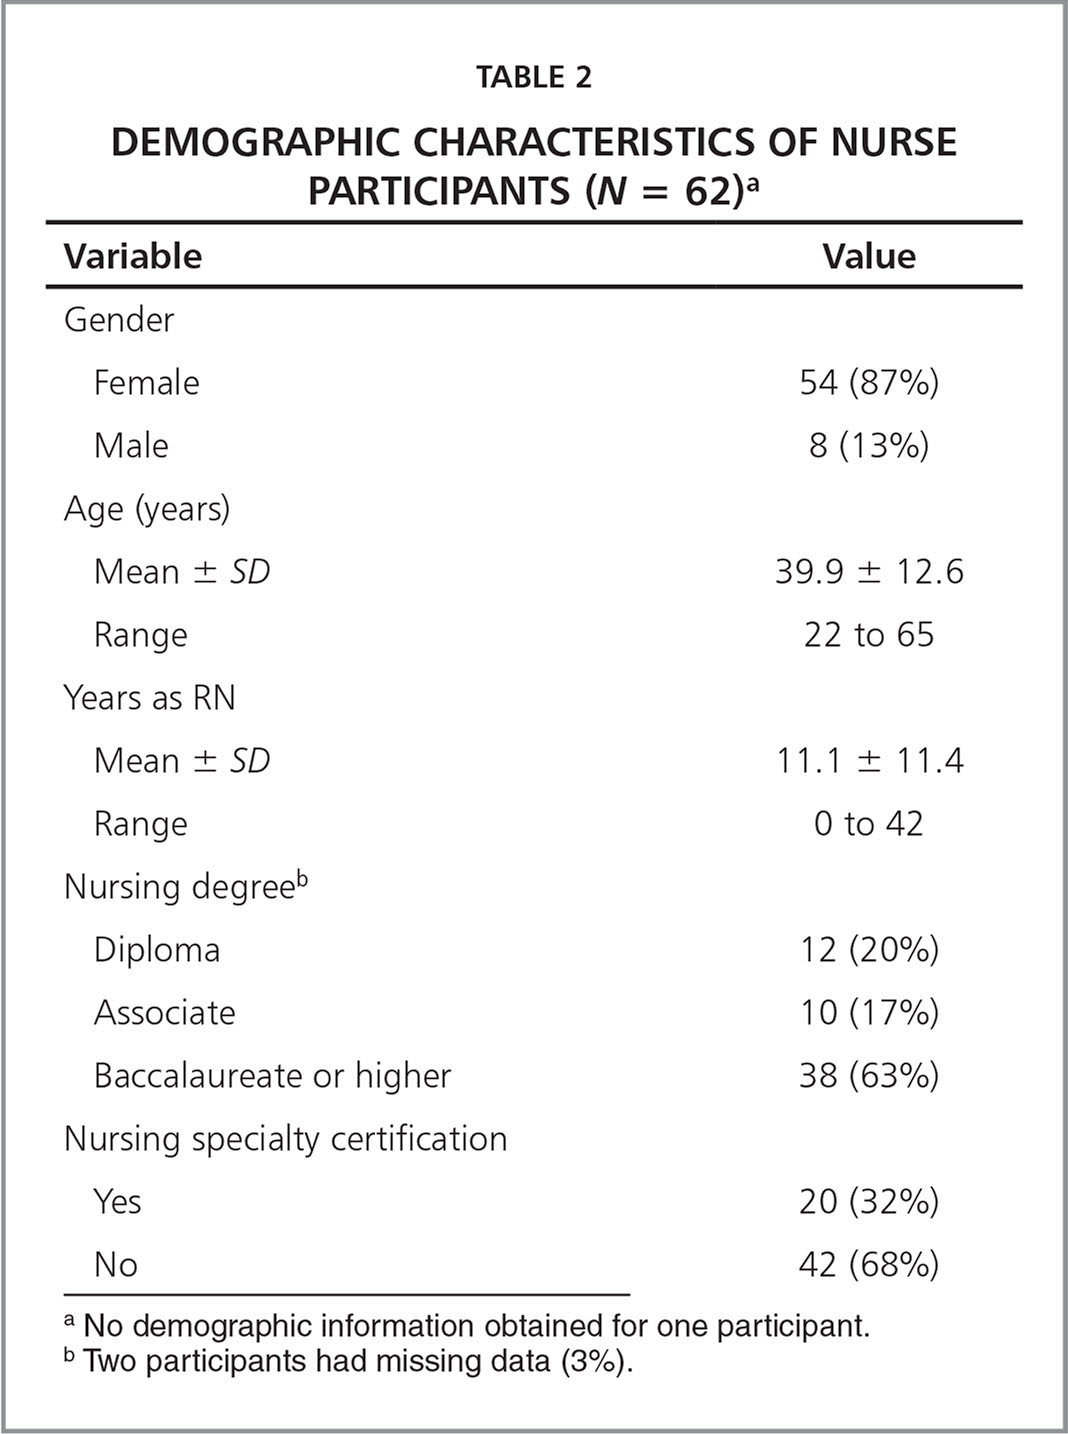 Demographic Characteristics of Nurse Participants (N = 62)a